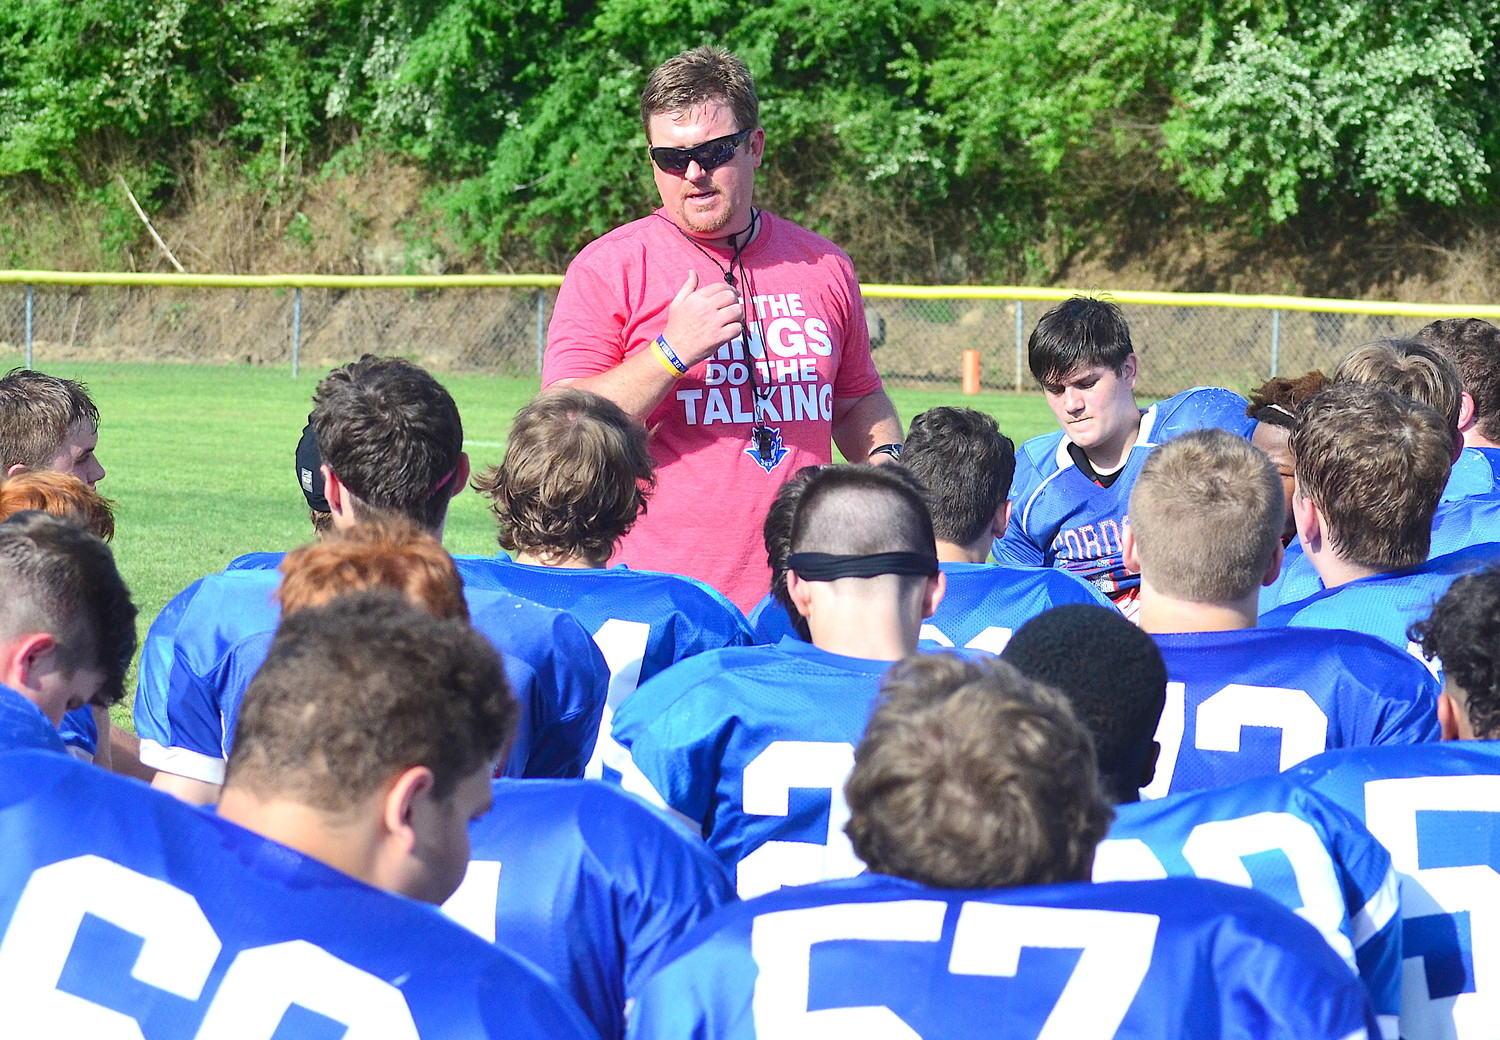 New Cordova High School football coach Justin Jones talks to players after practice on Thursday. The Blue Devils have more than 60 varsity players going through spring practice. The team is playing a spring game vs. W.S. Neal at the Troy University football field at 3 p.m. on May 18.